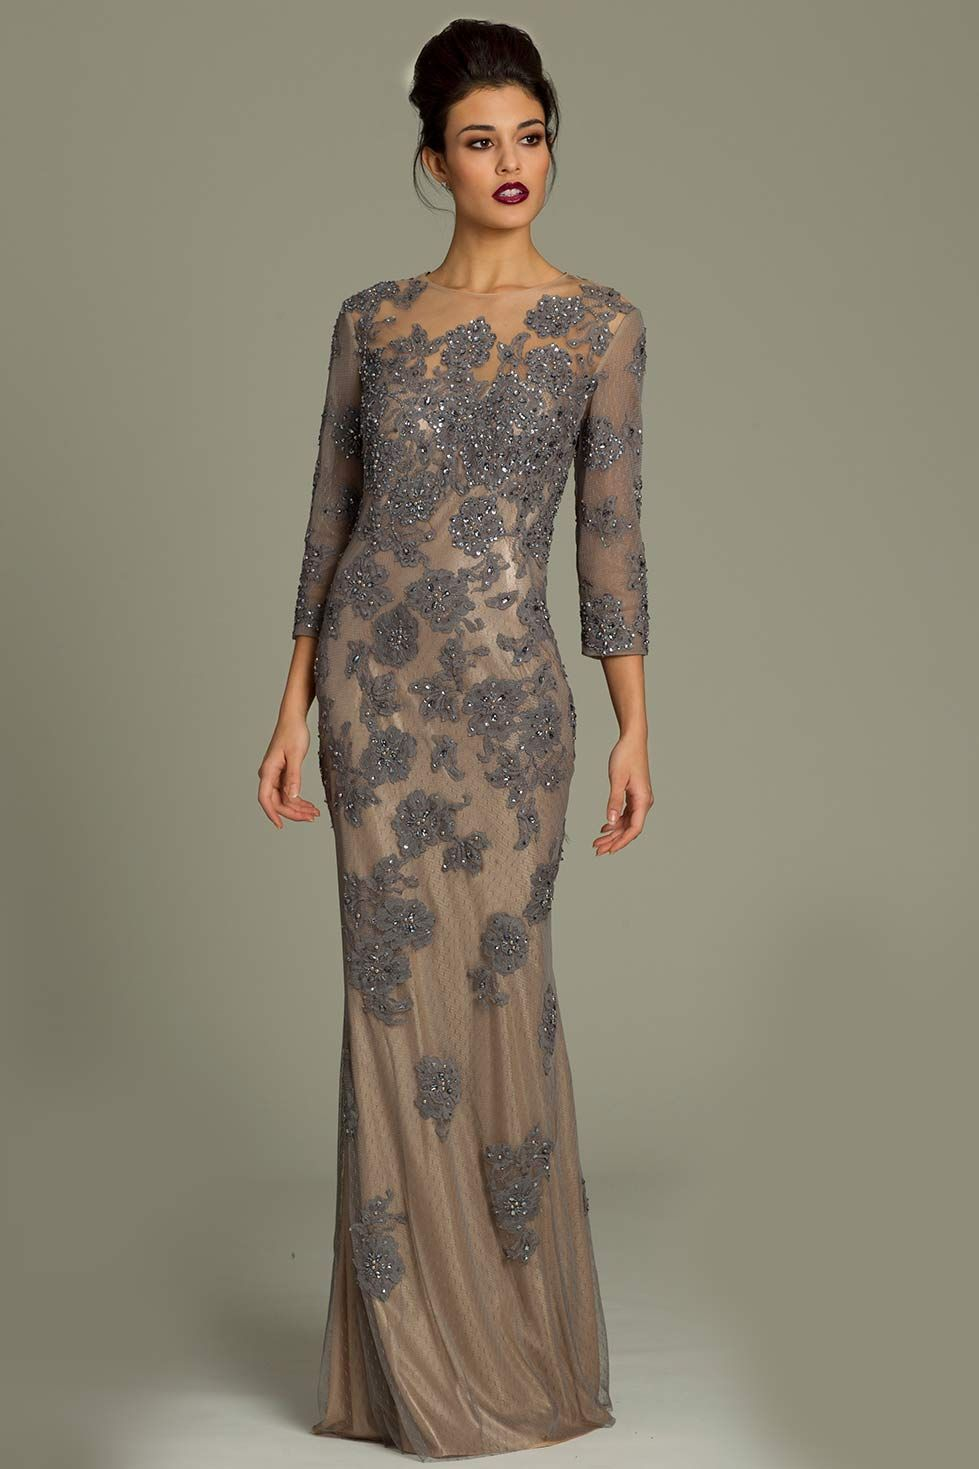 bc97ff8f38e Jovani Long sleeve lace gown featuring a sheer net lace applique overlay.